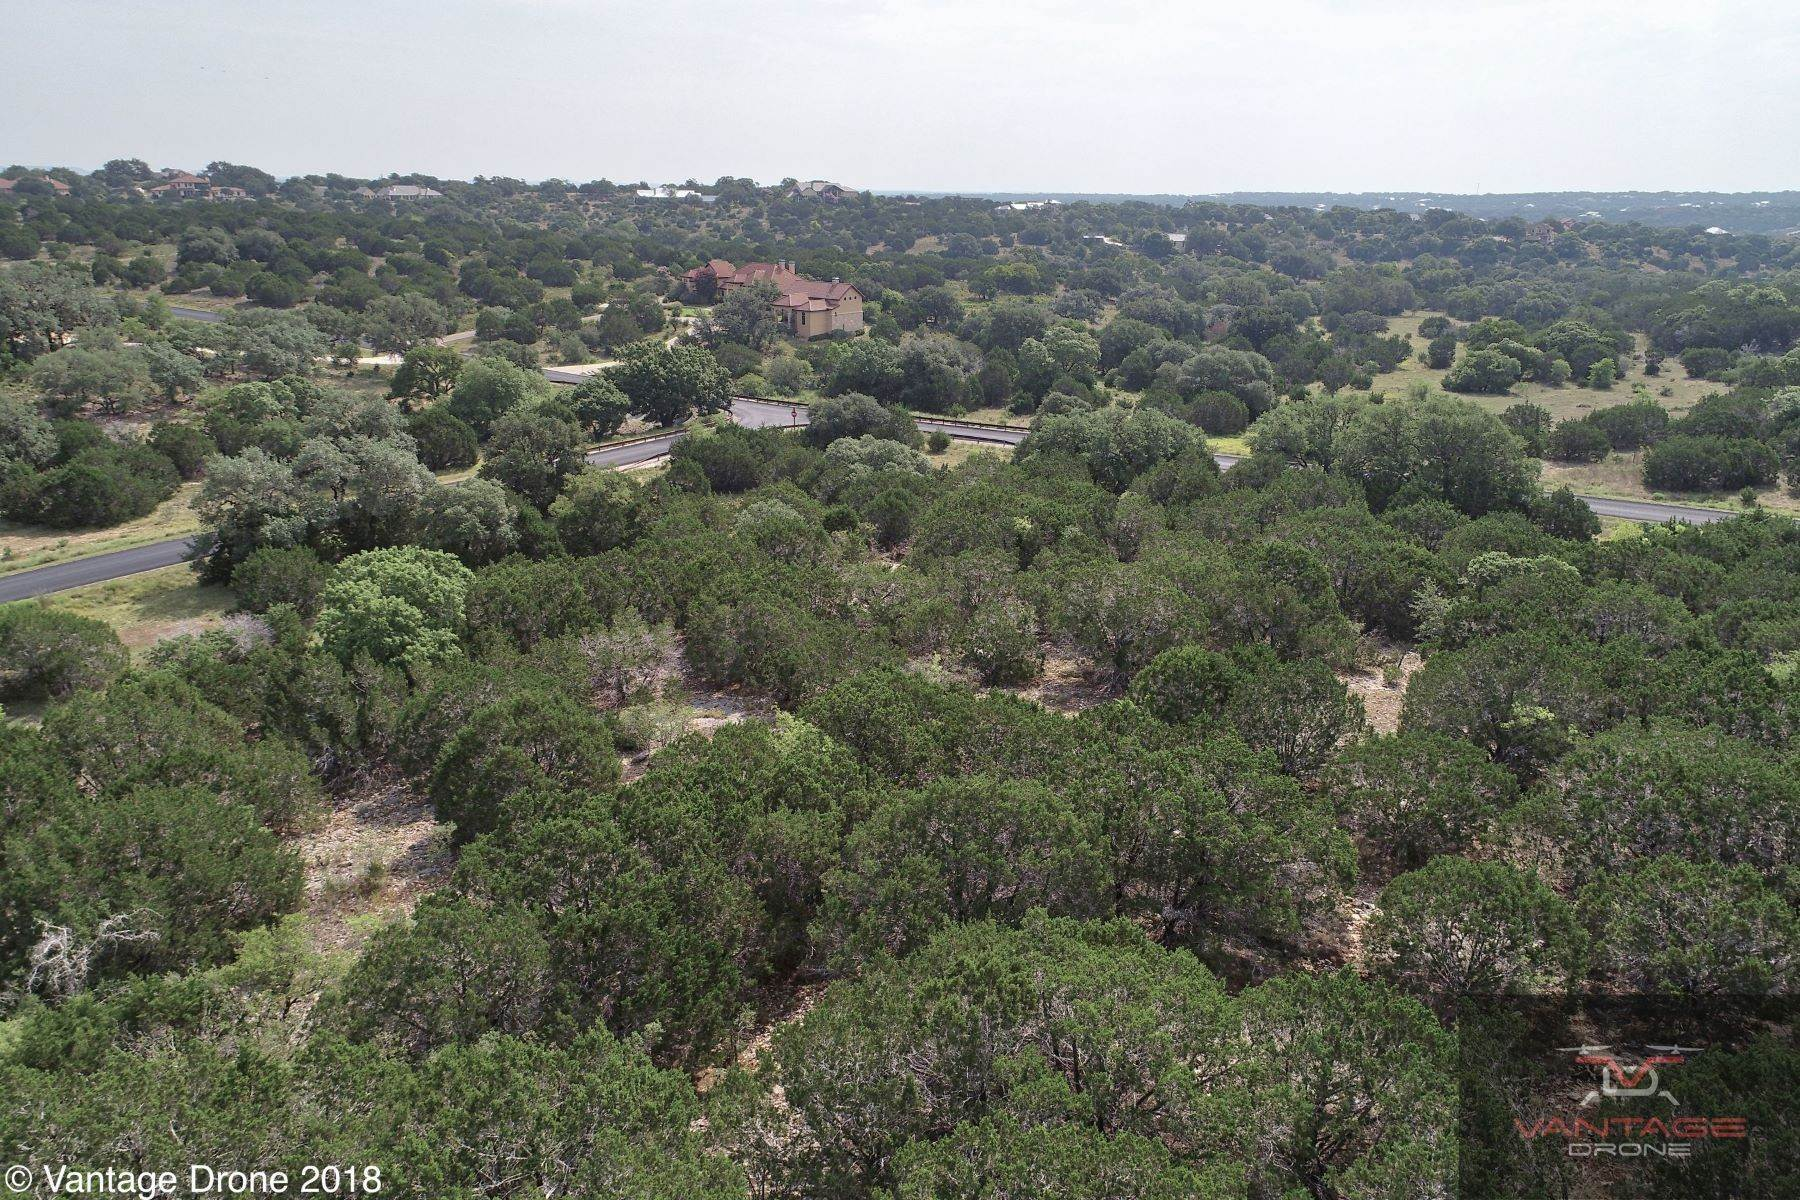 Land for Sale at Beautiful Hill Country Lot in Desired Sub-Division 110 Wood Glen Boerne, Texas 78006 United States